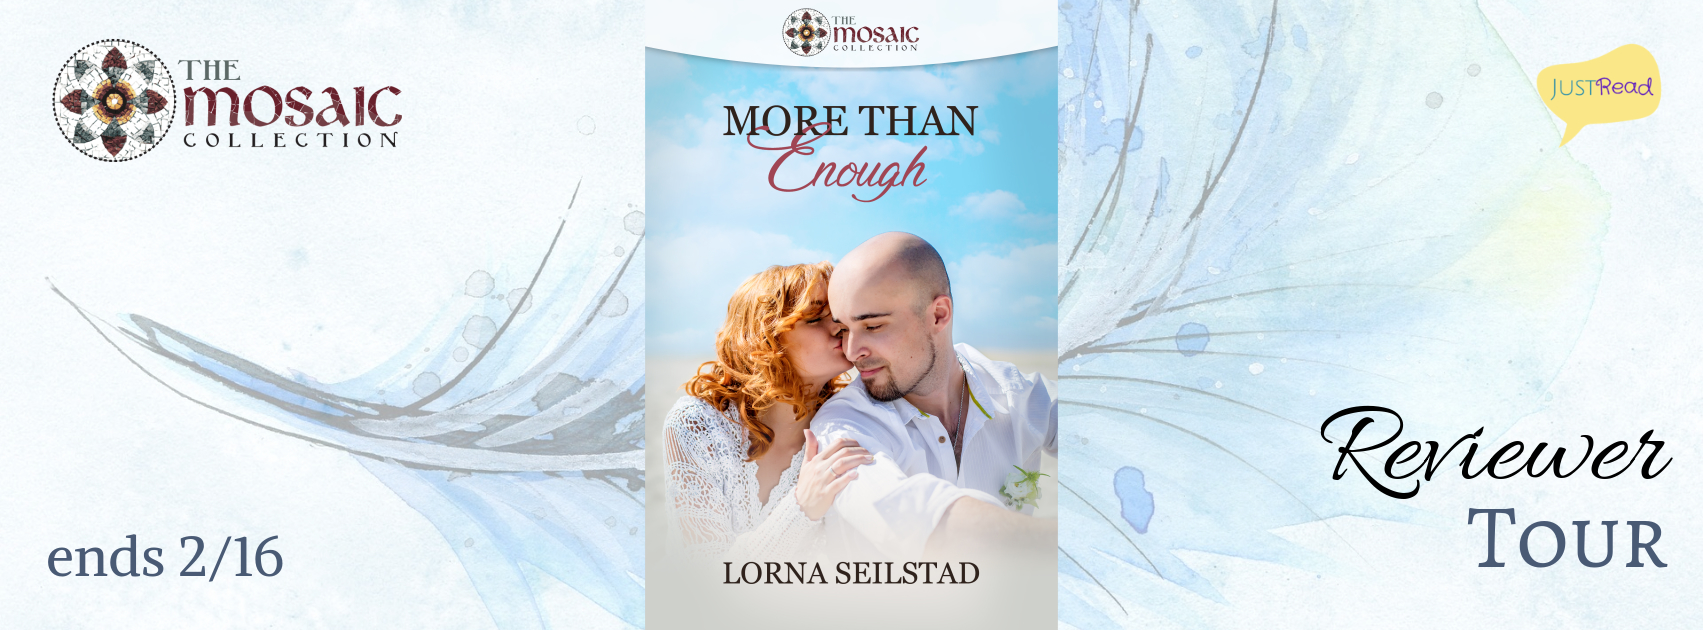 More Than Enough by Lorna Seilstad - Book Review, Preview